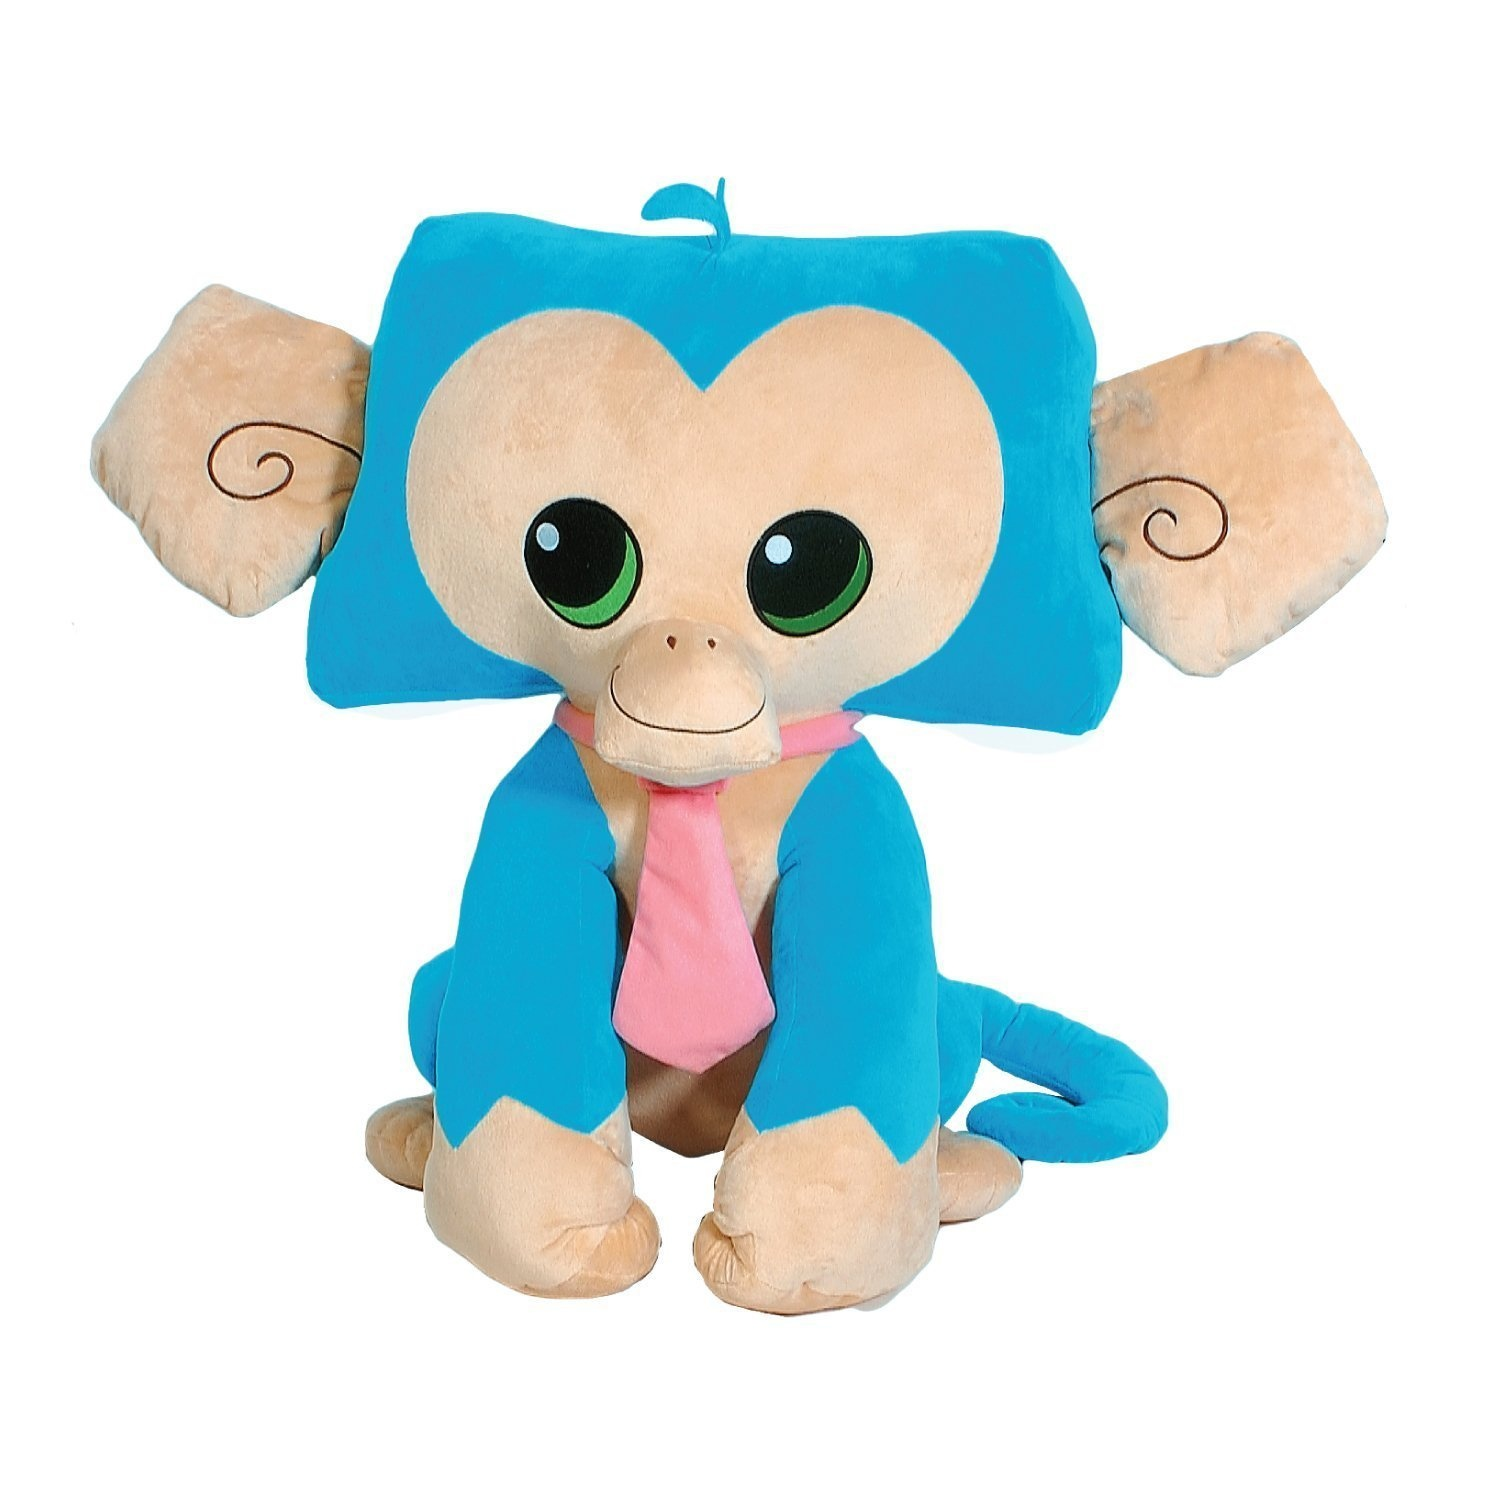 Animal Jam 18cm Blue Monkey Character Stuffed Plush Toy National Geographic  Popular Online Game